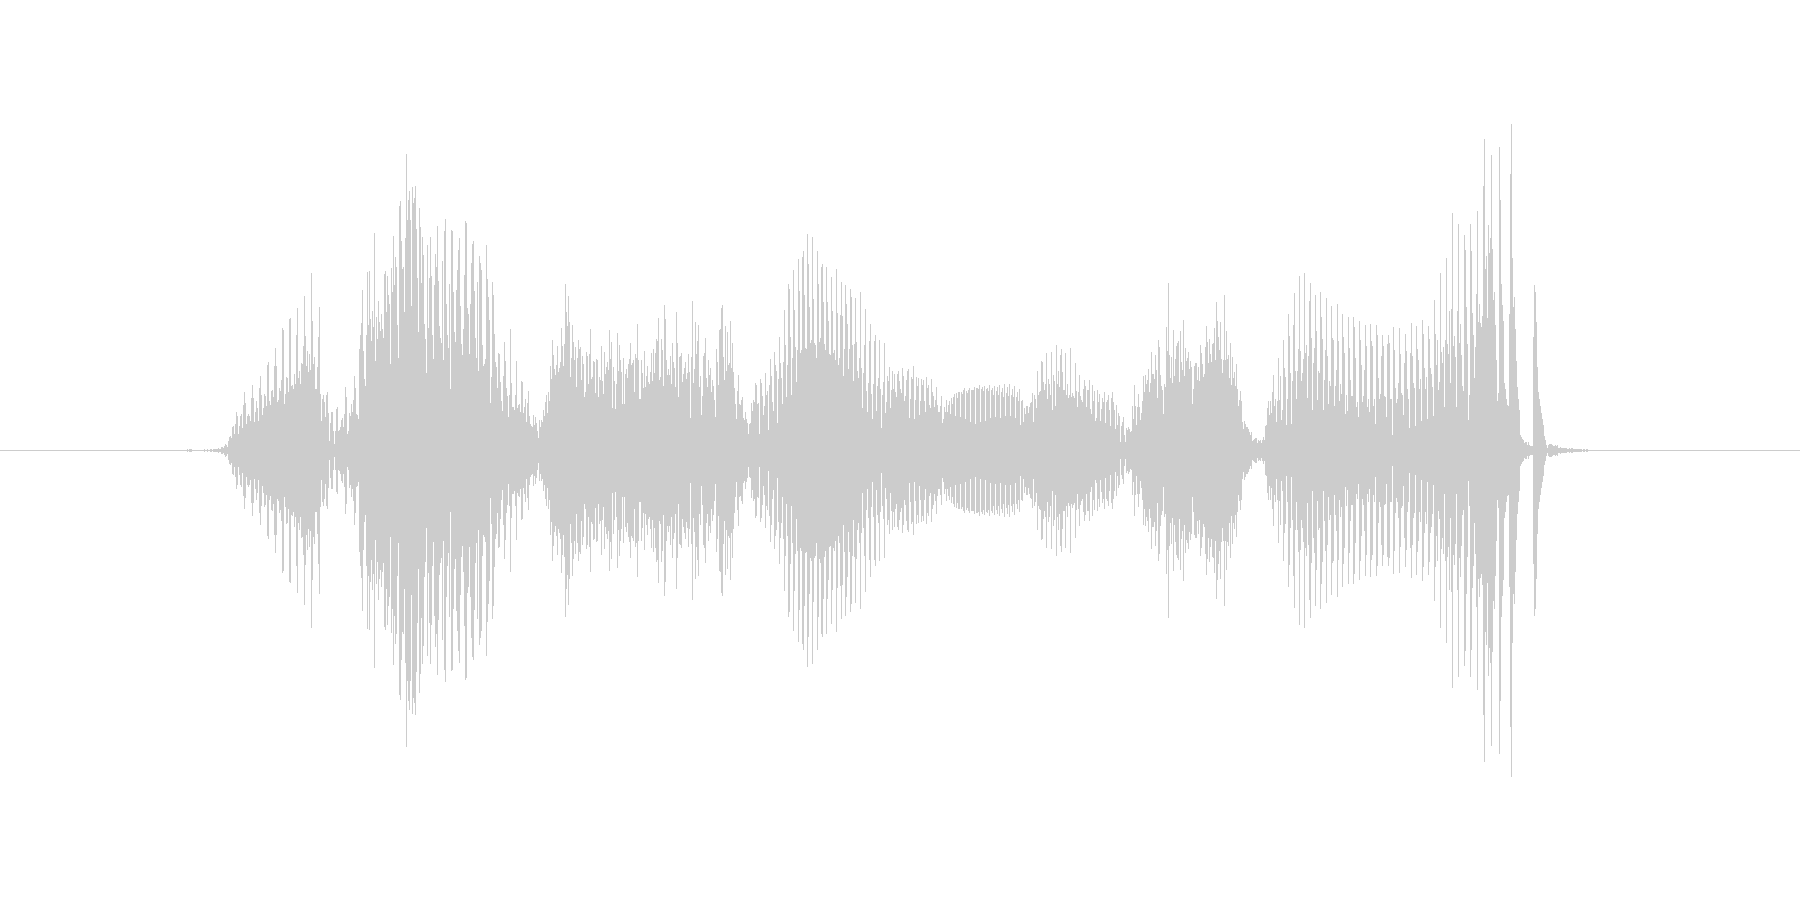 Welcome's unreproduced waveform